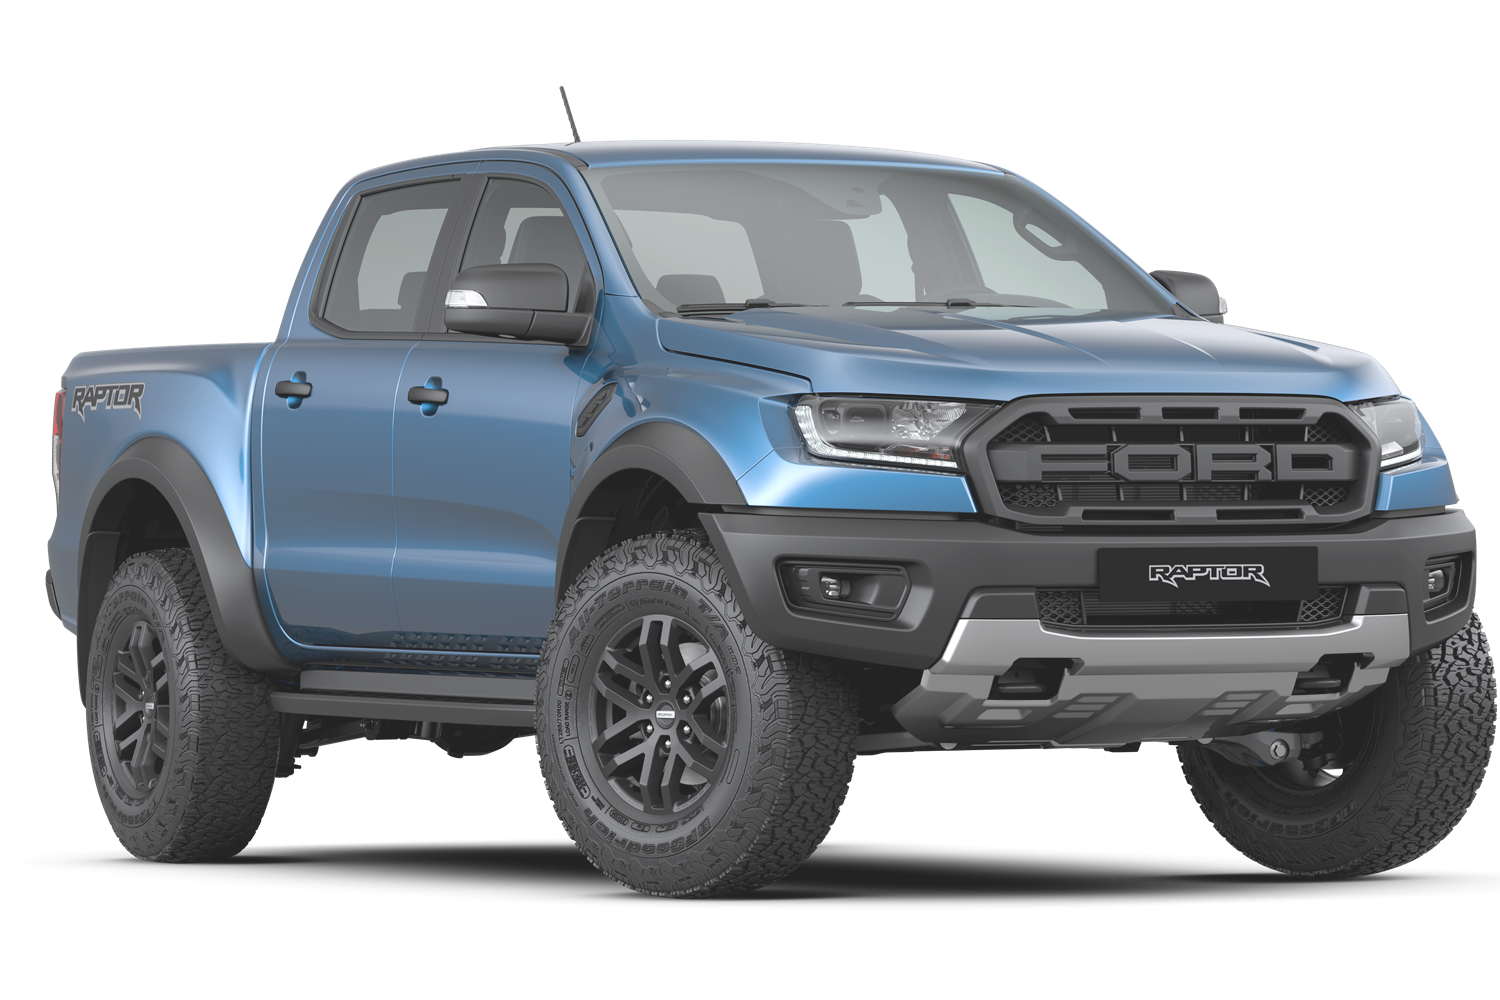 FORD RANGER RAPTOR 2.0L 4X4 at